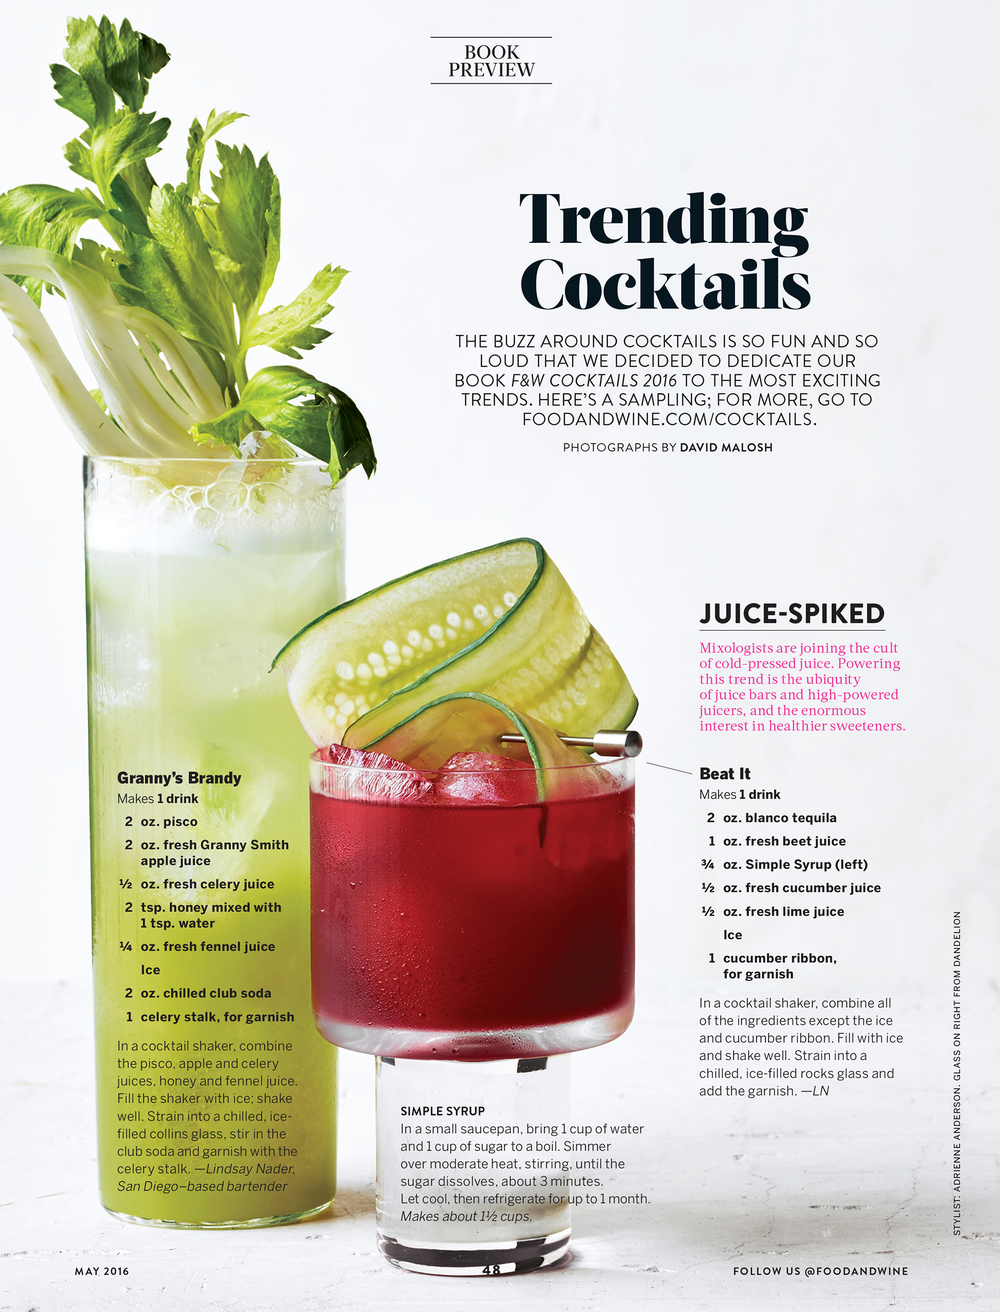 048_0516_Cocktail_Book_Preview-1.jpg